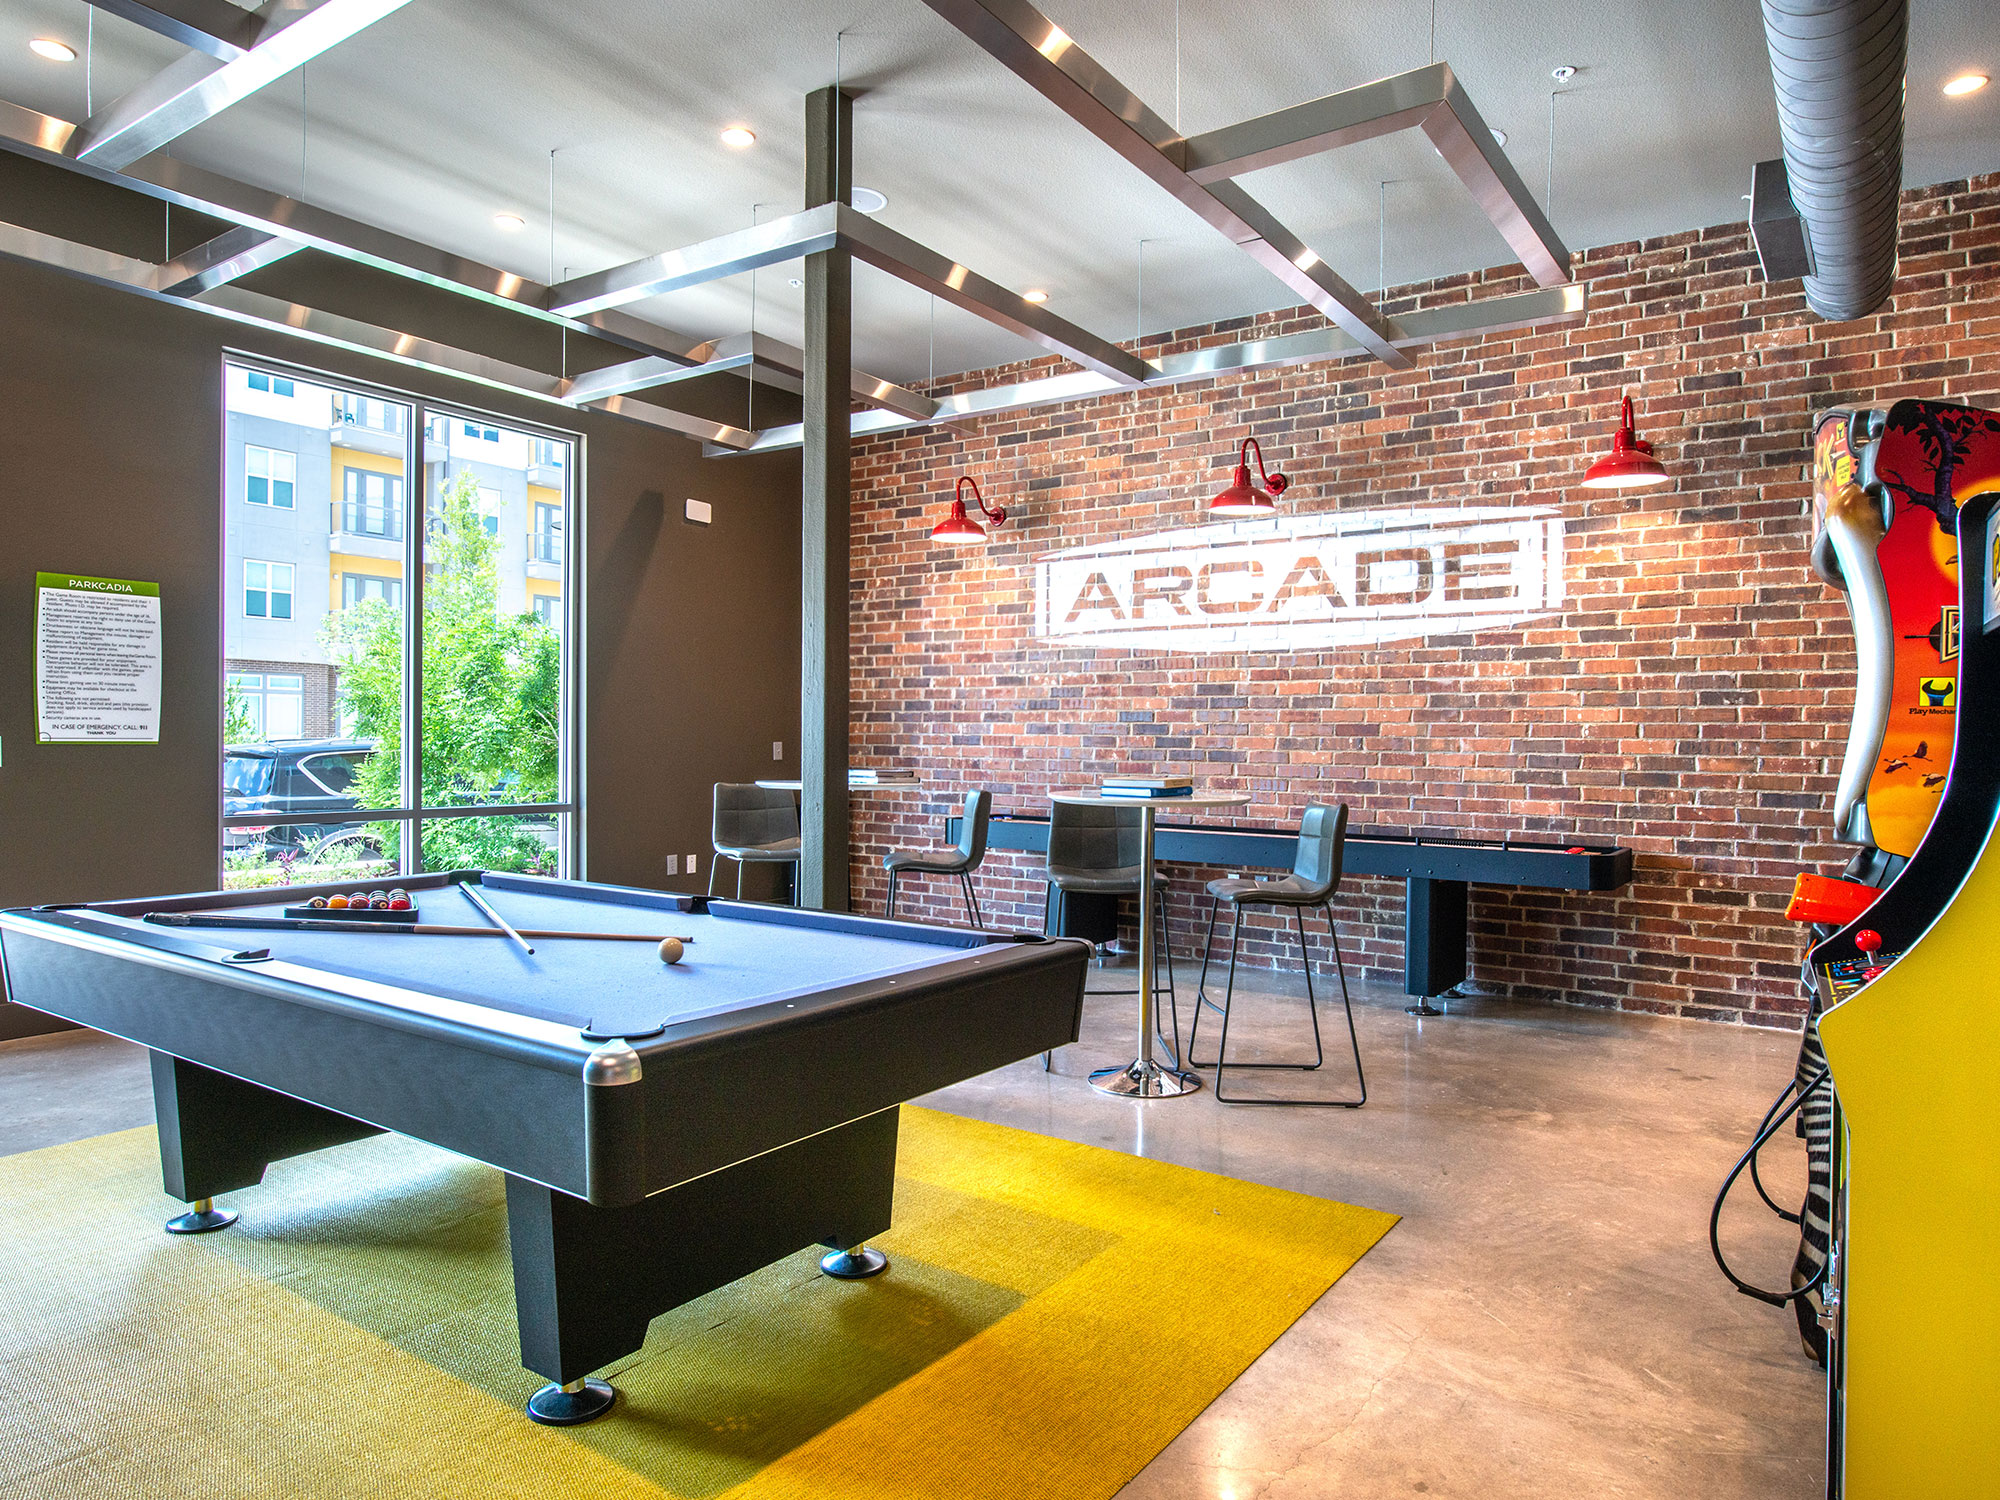 Clubhouse interior with shuffleboard, arcade games pool table and high bar seating